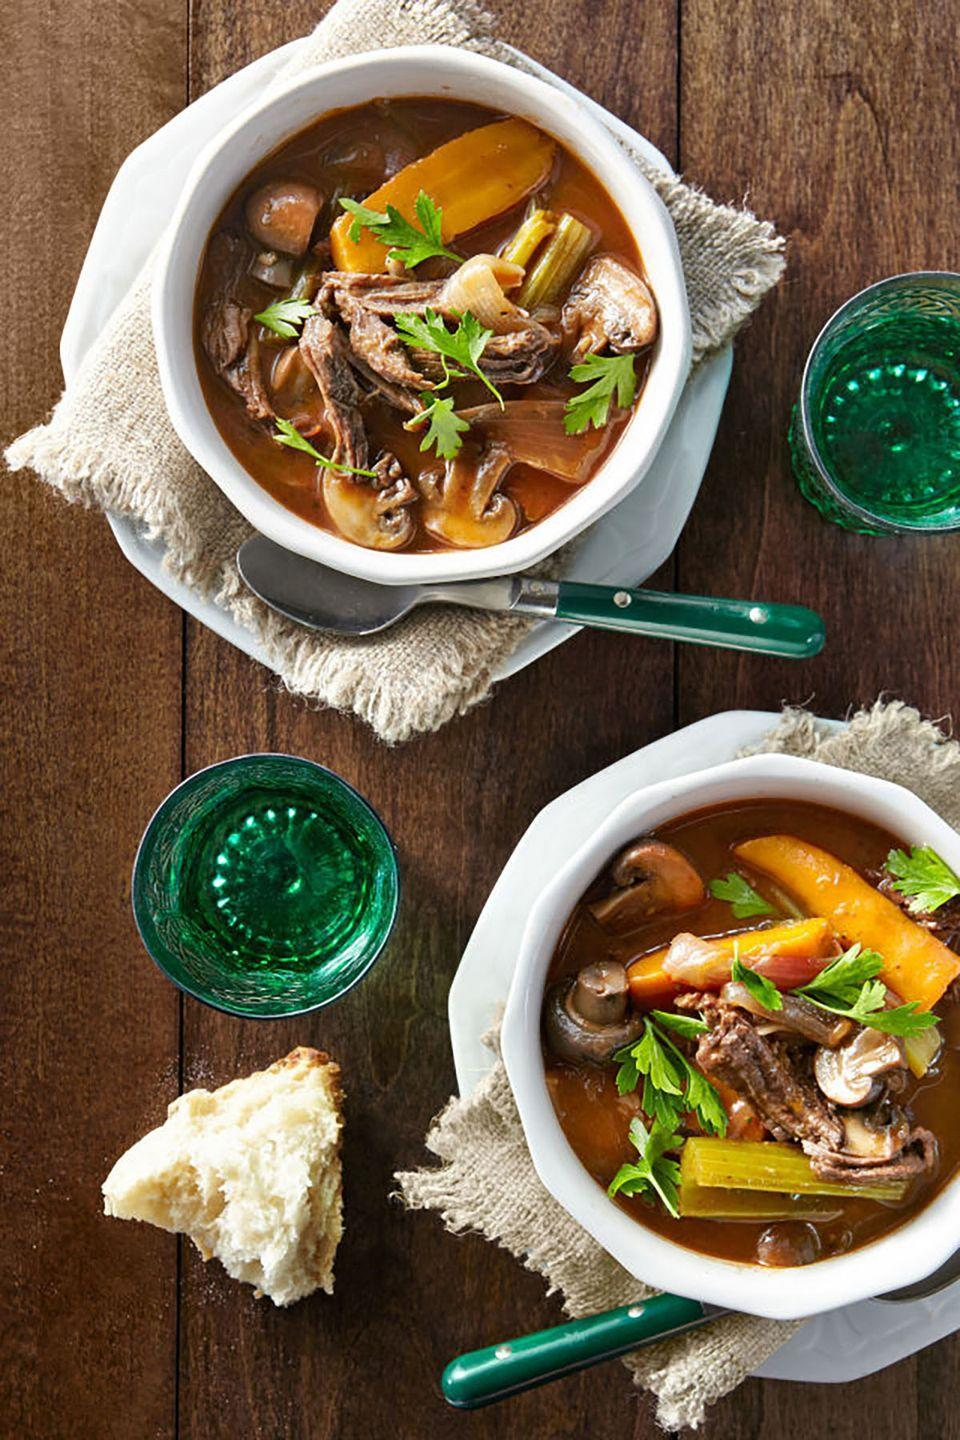 """<p>This savory, protein-packed dish is perfect for a romantic meal at home, especially on a chilly winter evening. Simple and quick to throw together, the stew can cook all day so it's ready when you and your sweetheart are.</p><p><strong><a href=""""https://www.countryliving.com/food-drinks/recipes/a41065/slow-cooker-red-wine-beef-stew/"""" rel=""""nofollow noopener"""" target=""""_blank"""" data-ylk=""""slk:Get the recipe"""" class=""""link rapid-noclick-resp"""">Get the recipe</a>.</strong><br></p><p><a class=""""link rapid-noclick-resp"""" href=""""https://www.amazon.com/Crock-Pot-SCV700SS-Stainless-7-Quart-Manual/dp/B003OAJGJO/?tag=syn-yahoo-20&ascsubtag=%5Bartid%7C10050.g.1115%5Bsrc%7Cyahoo-us"""" rel=""""nofollow noopener"""" target=""""_blank"""" data-ylk=""""slk:SHOP SLOW COOKERS"""">SHOP SLOW COOKERS</a> </p>"""